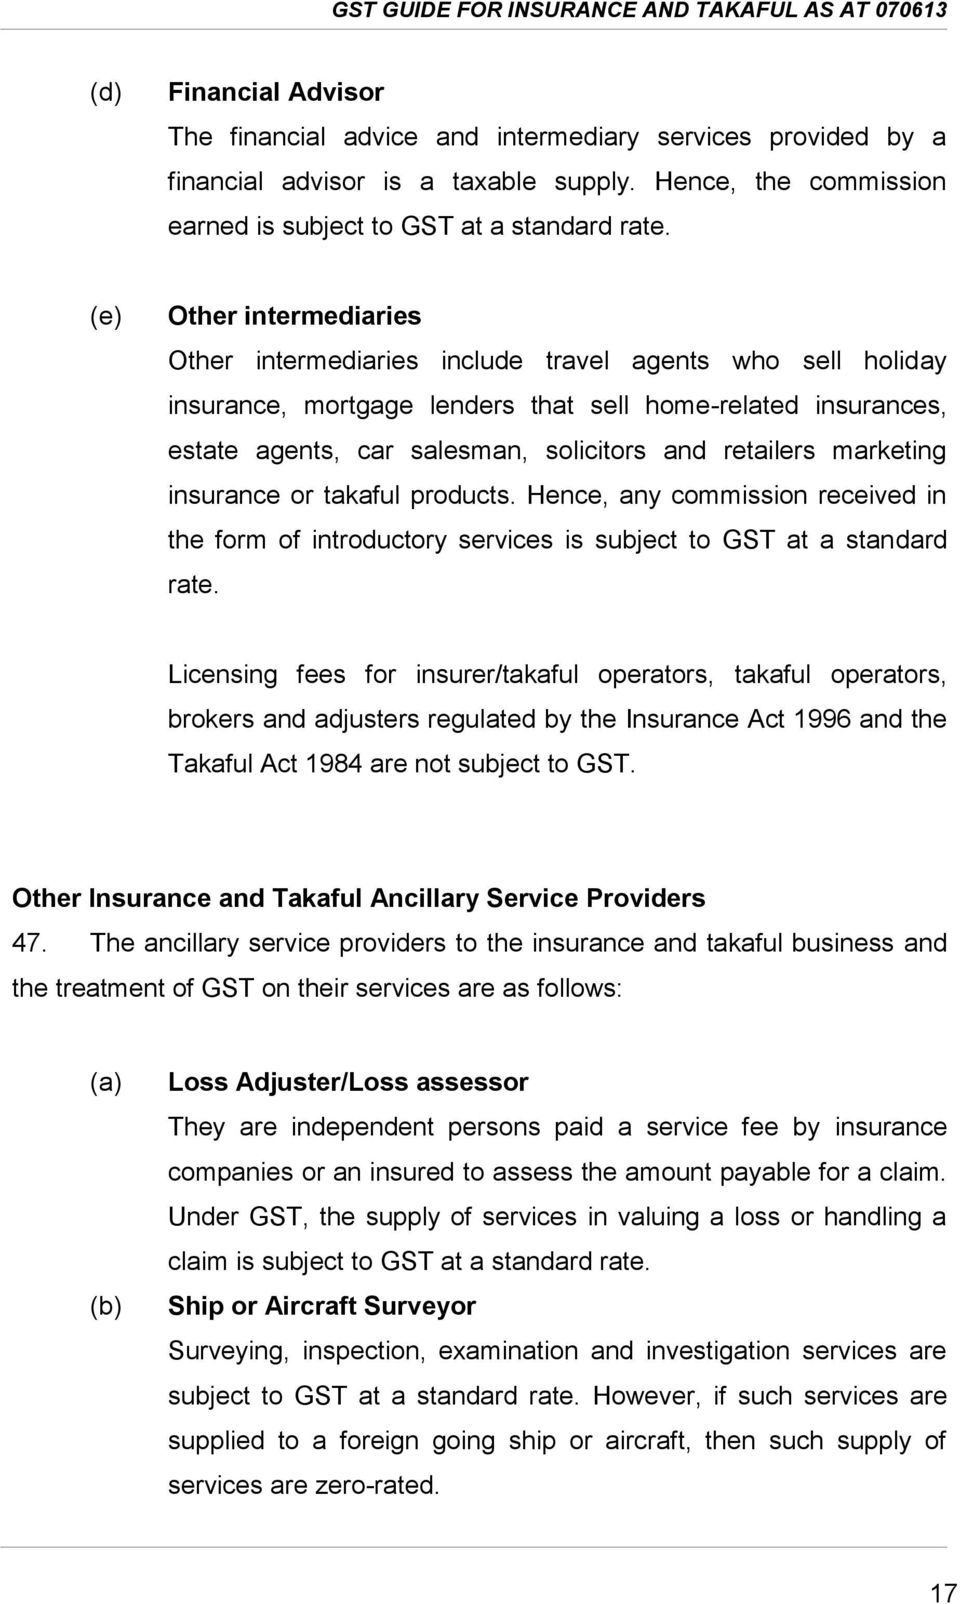 retailers marketing insurance or takaful products. Hence, any commission received in the form of introductory services is subject to GST at a standard rate.